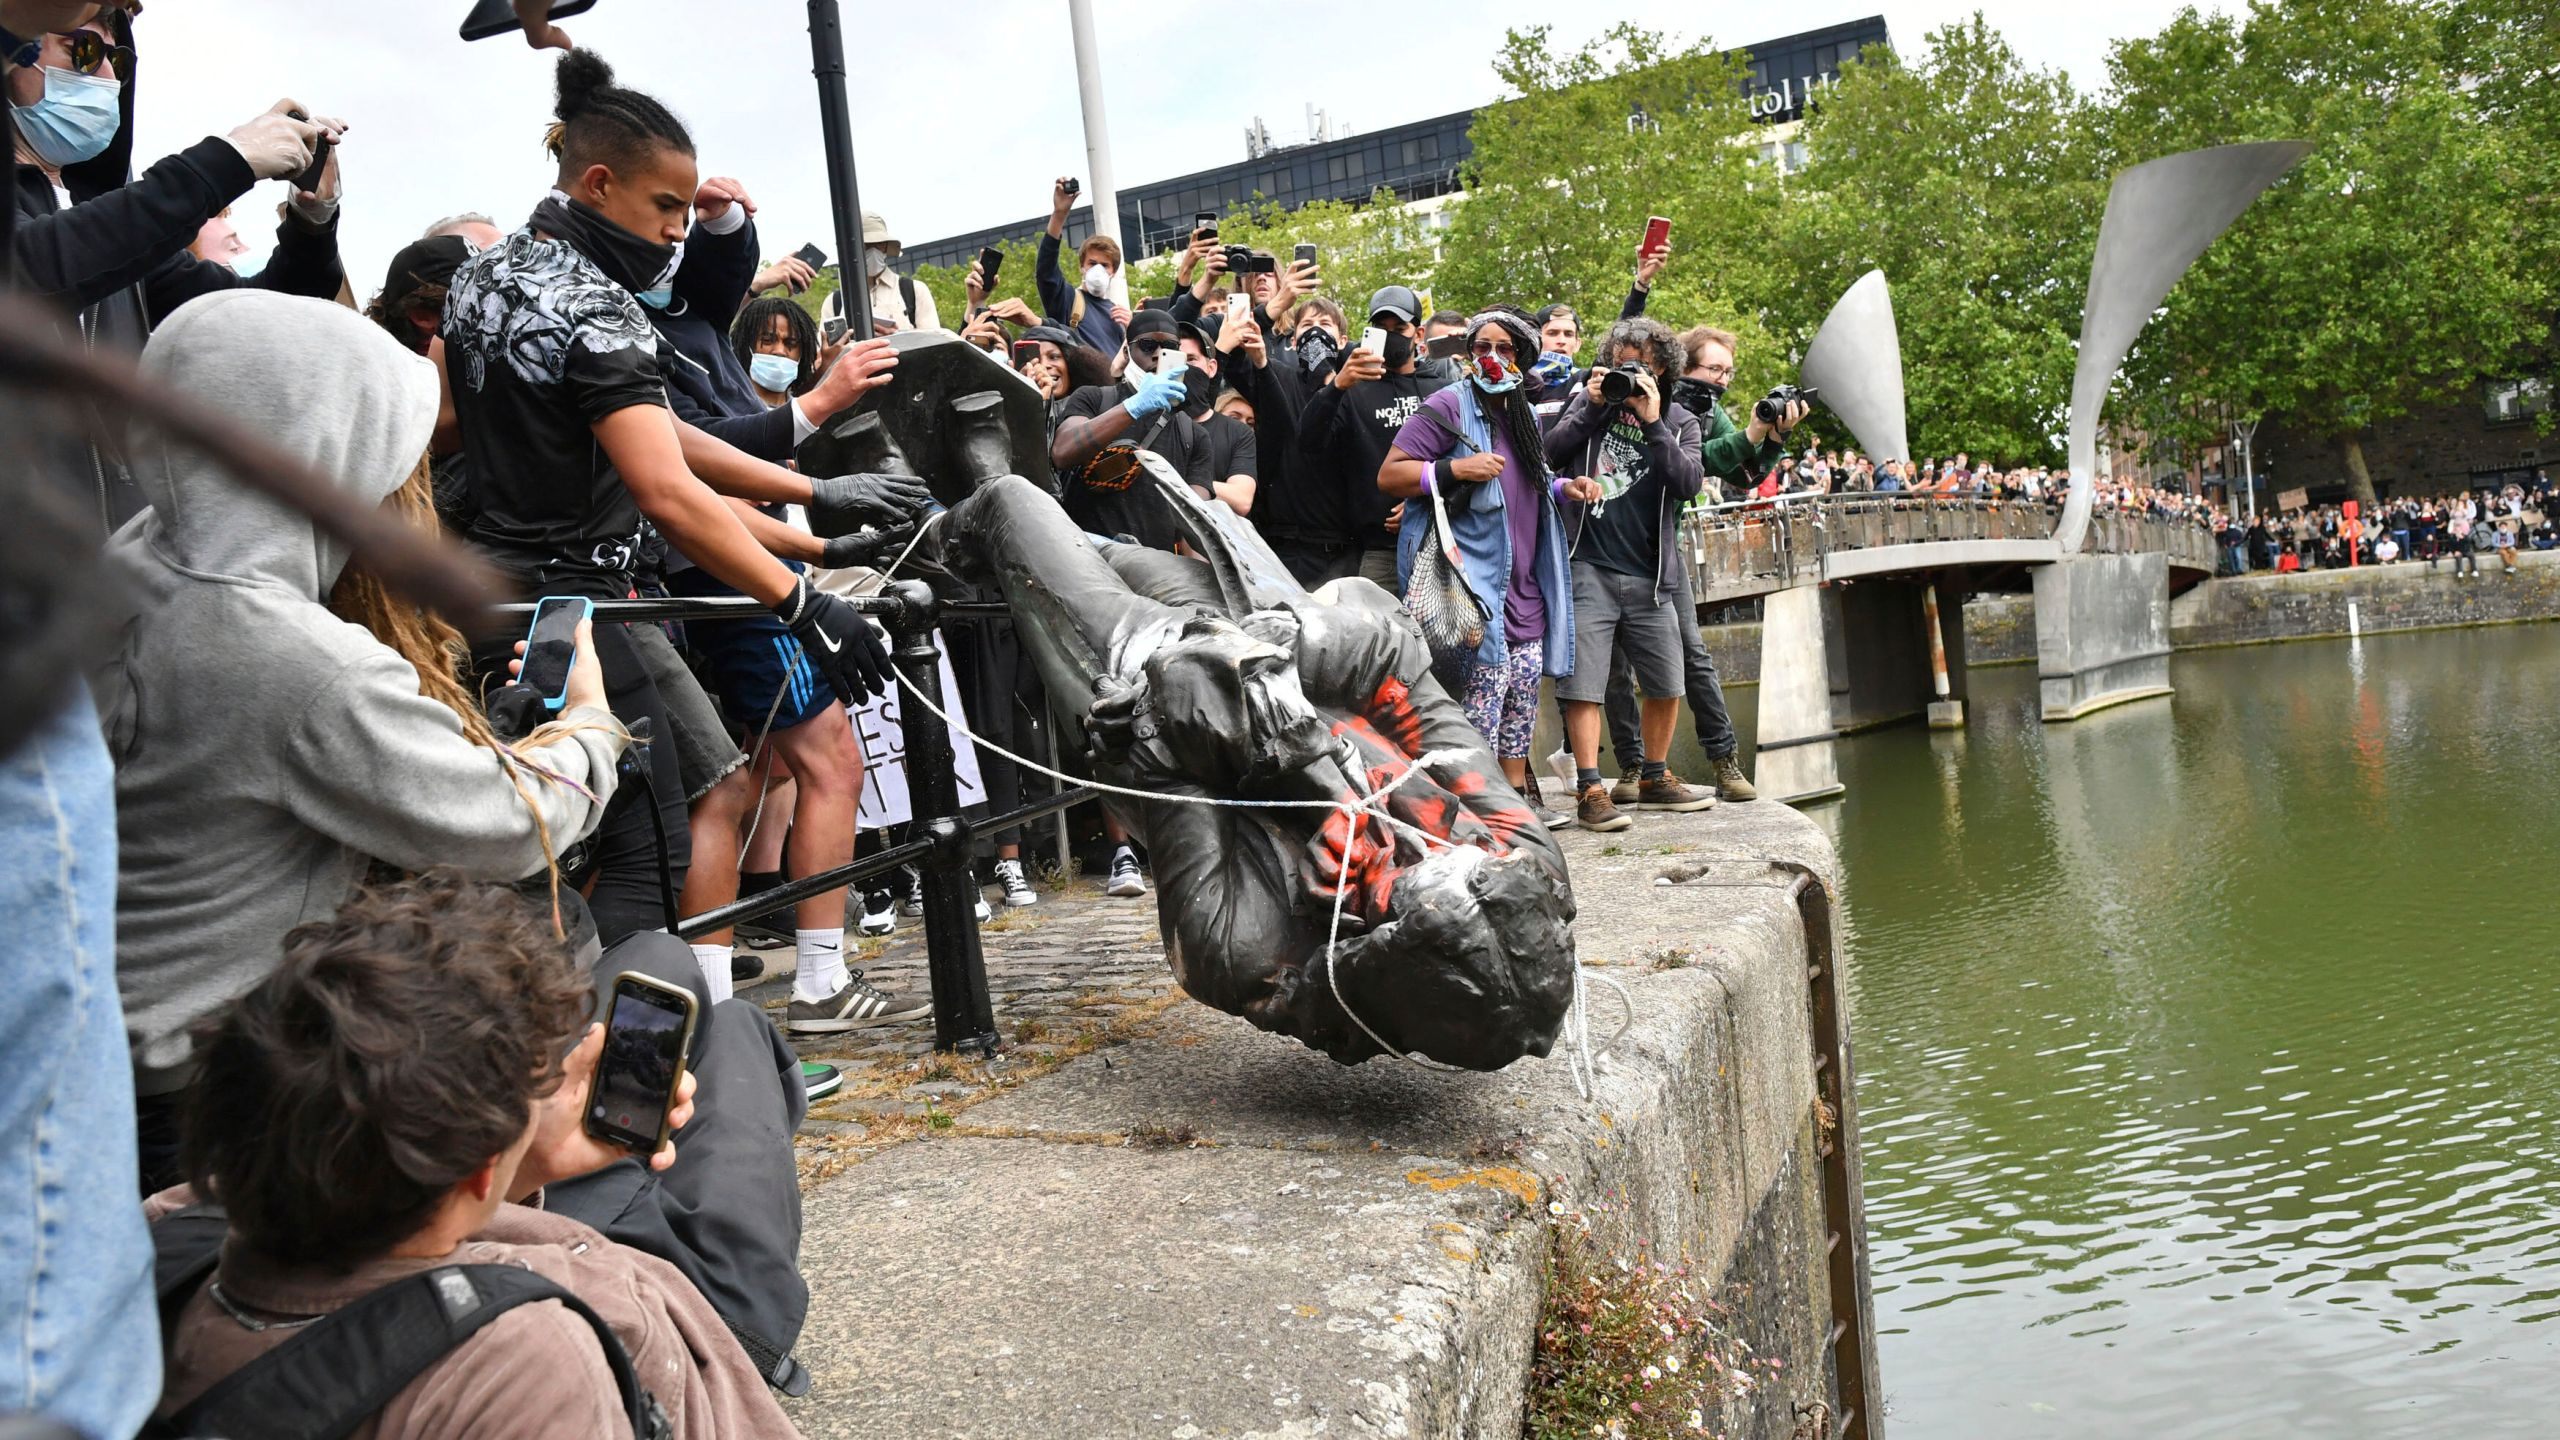 Protesters throw a statue of slave trader Edward Colston into Bristol harbour, during a Black Lives Matter protest rally in Bristol, England, on June 7, 2020, in response to the recent killing of George Floyd. (Ben Birchall/PA via CNN)